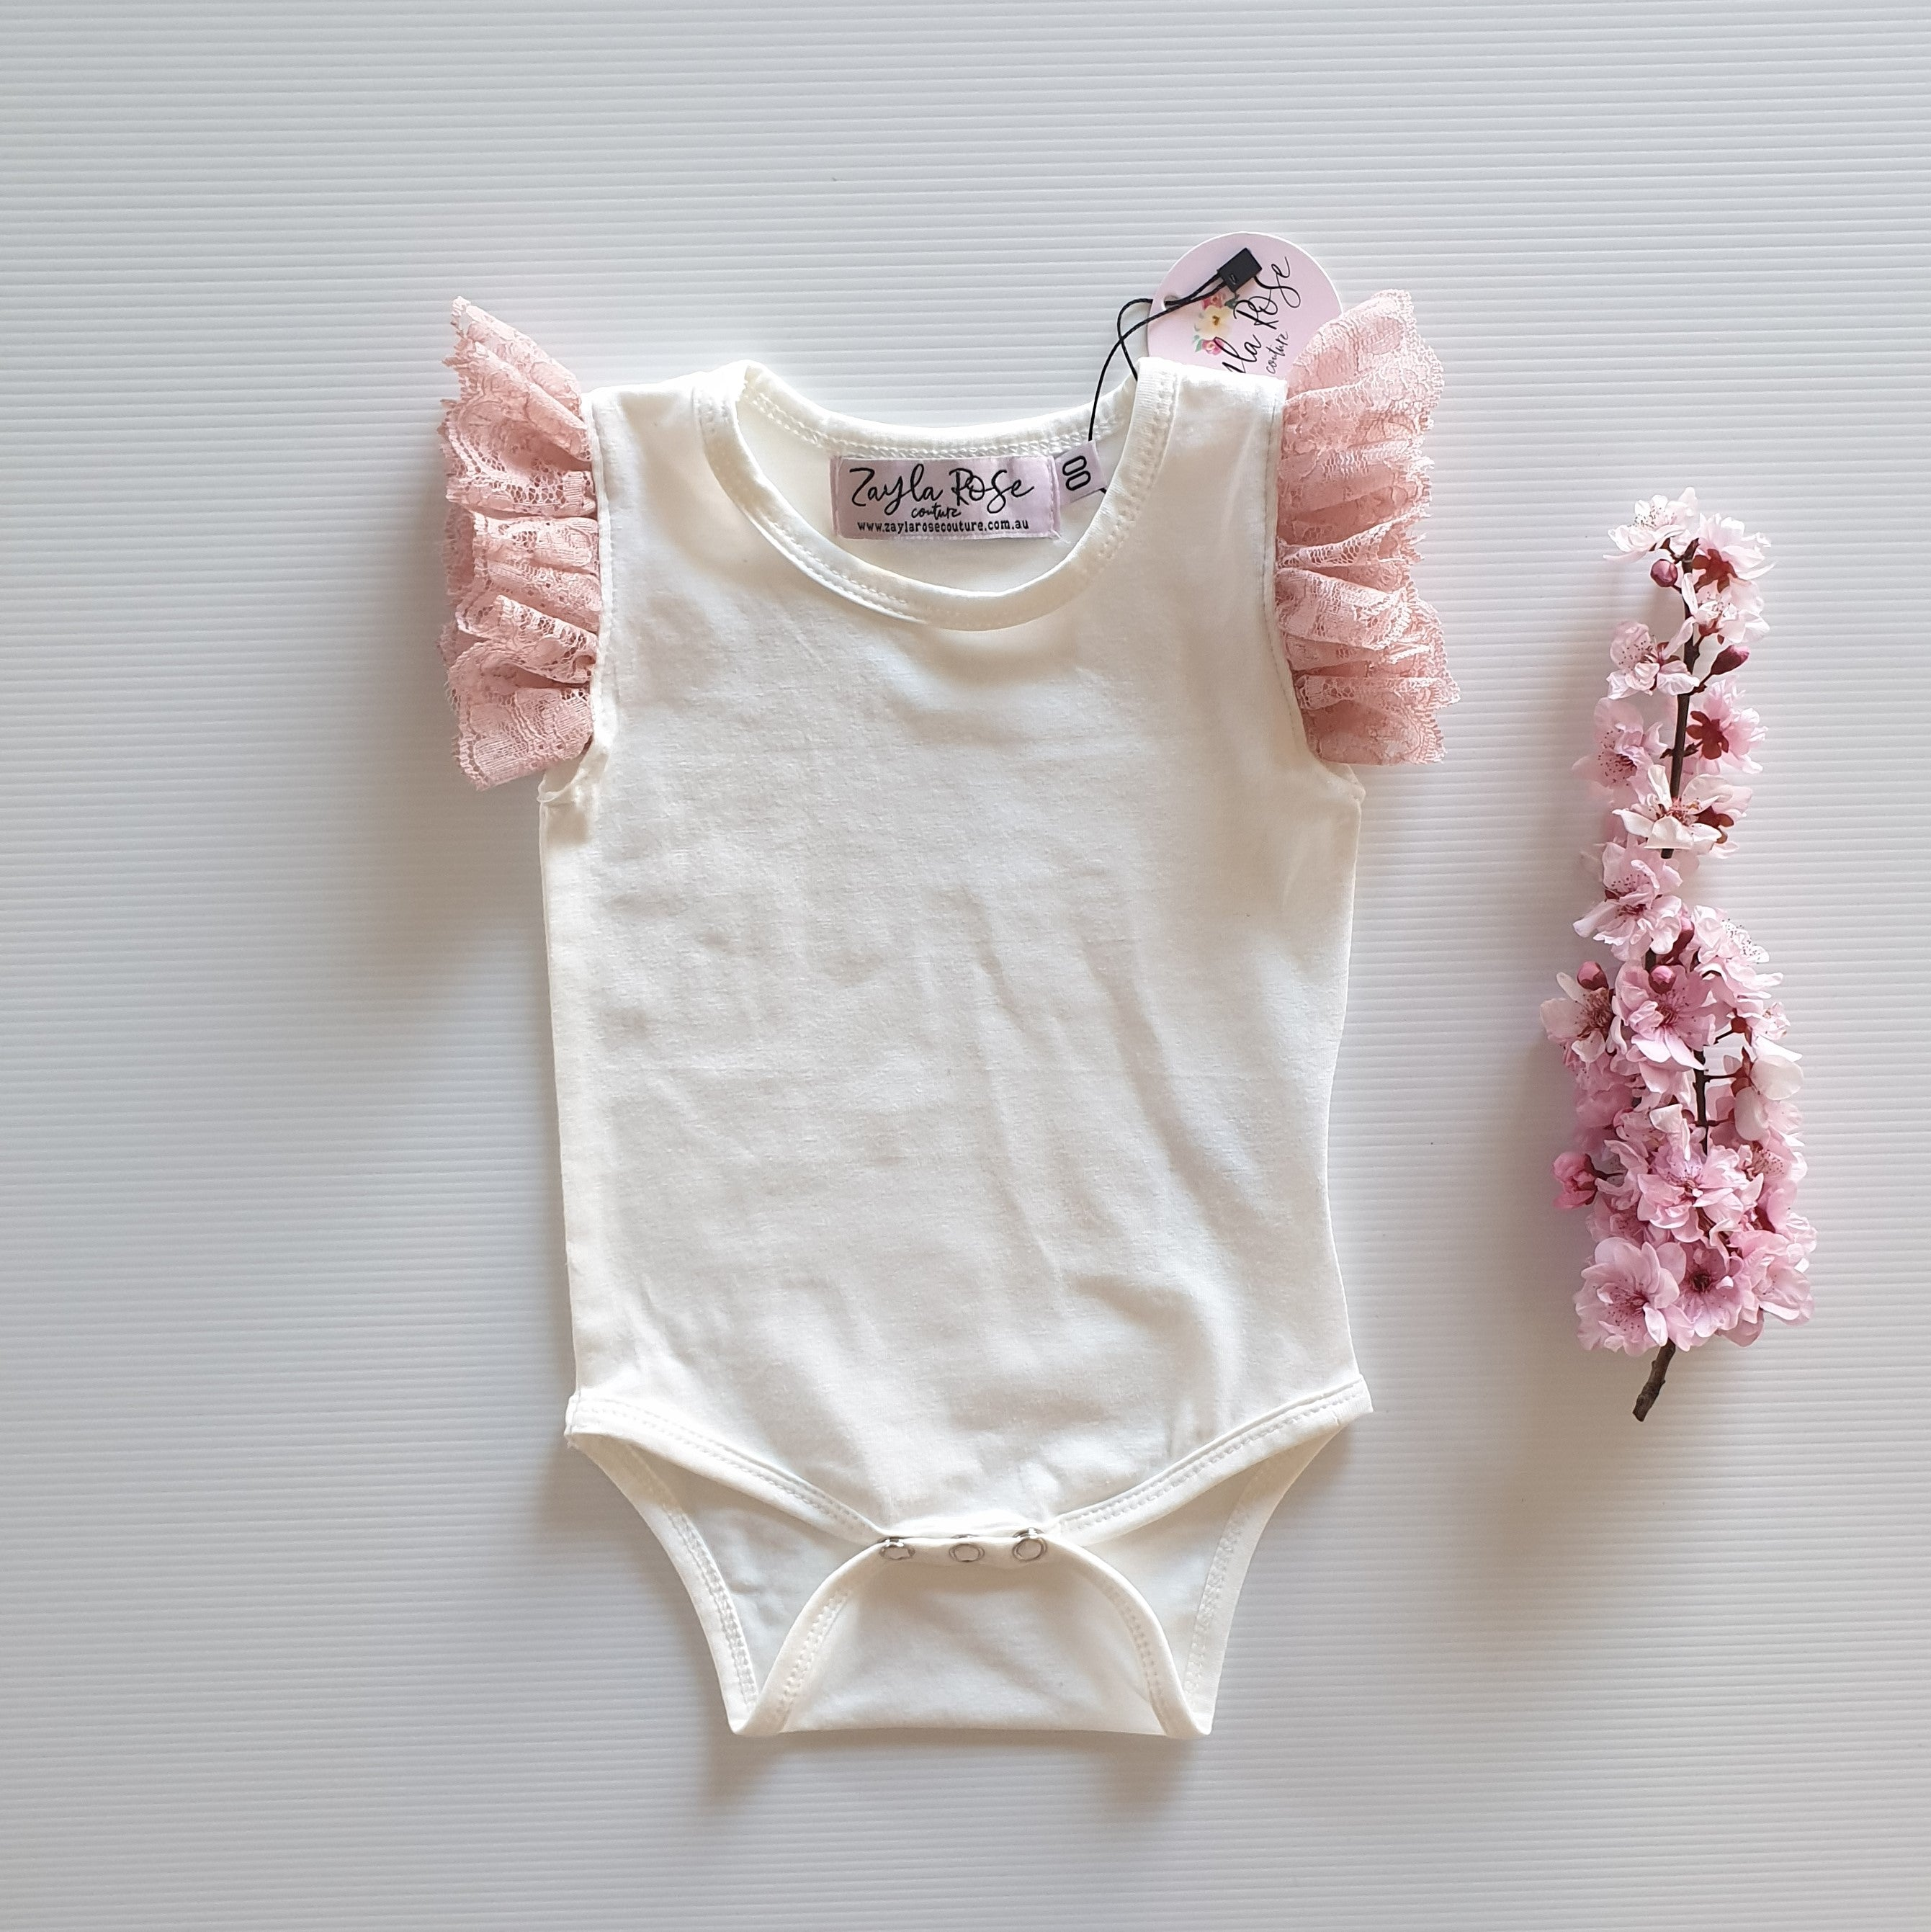 Ivory & Dusty Rose Lace Flutter Romper